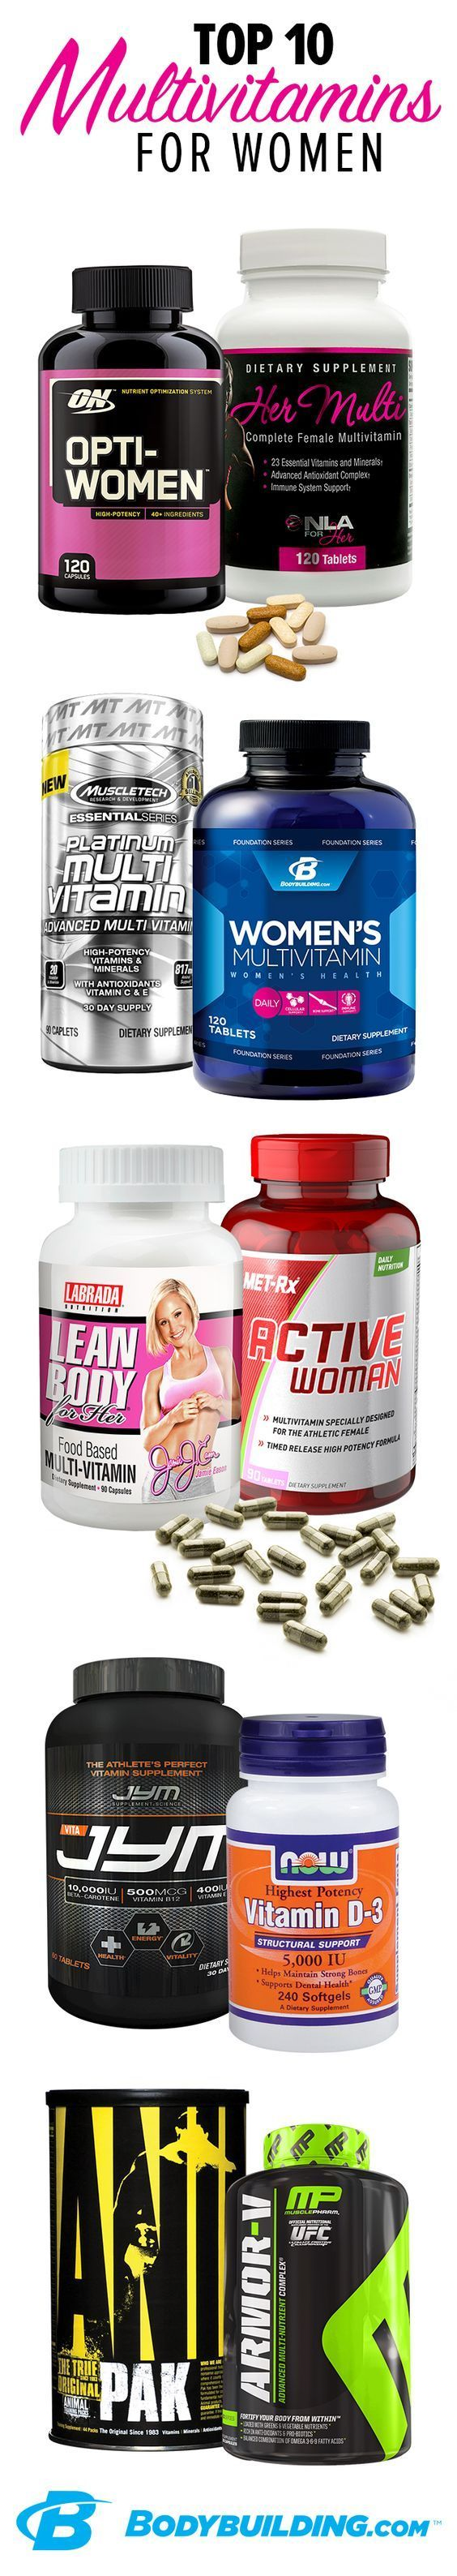 Natural human growth hormone has been shown to be a key weight loss multiplier and muscles gain booster, when combined with regular exercise and a proper diet. Read on to know why.